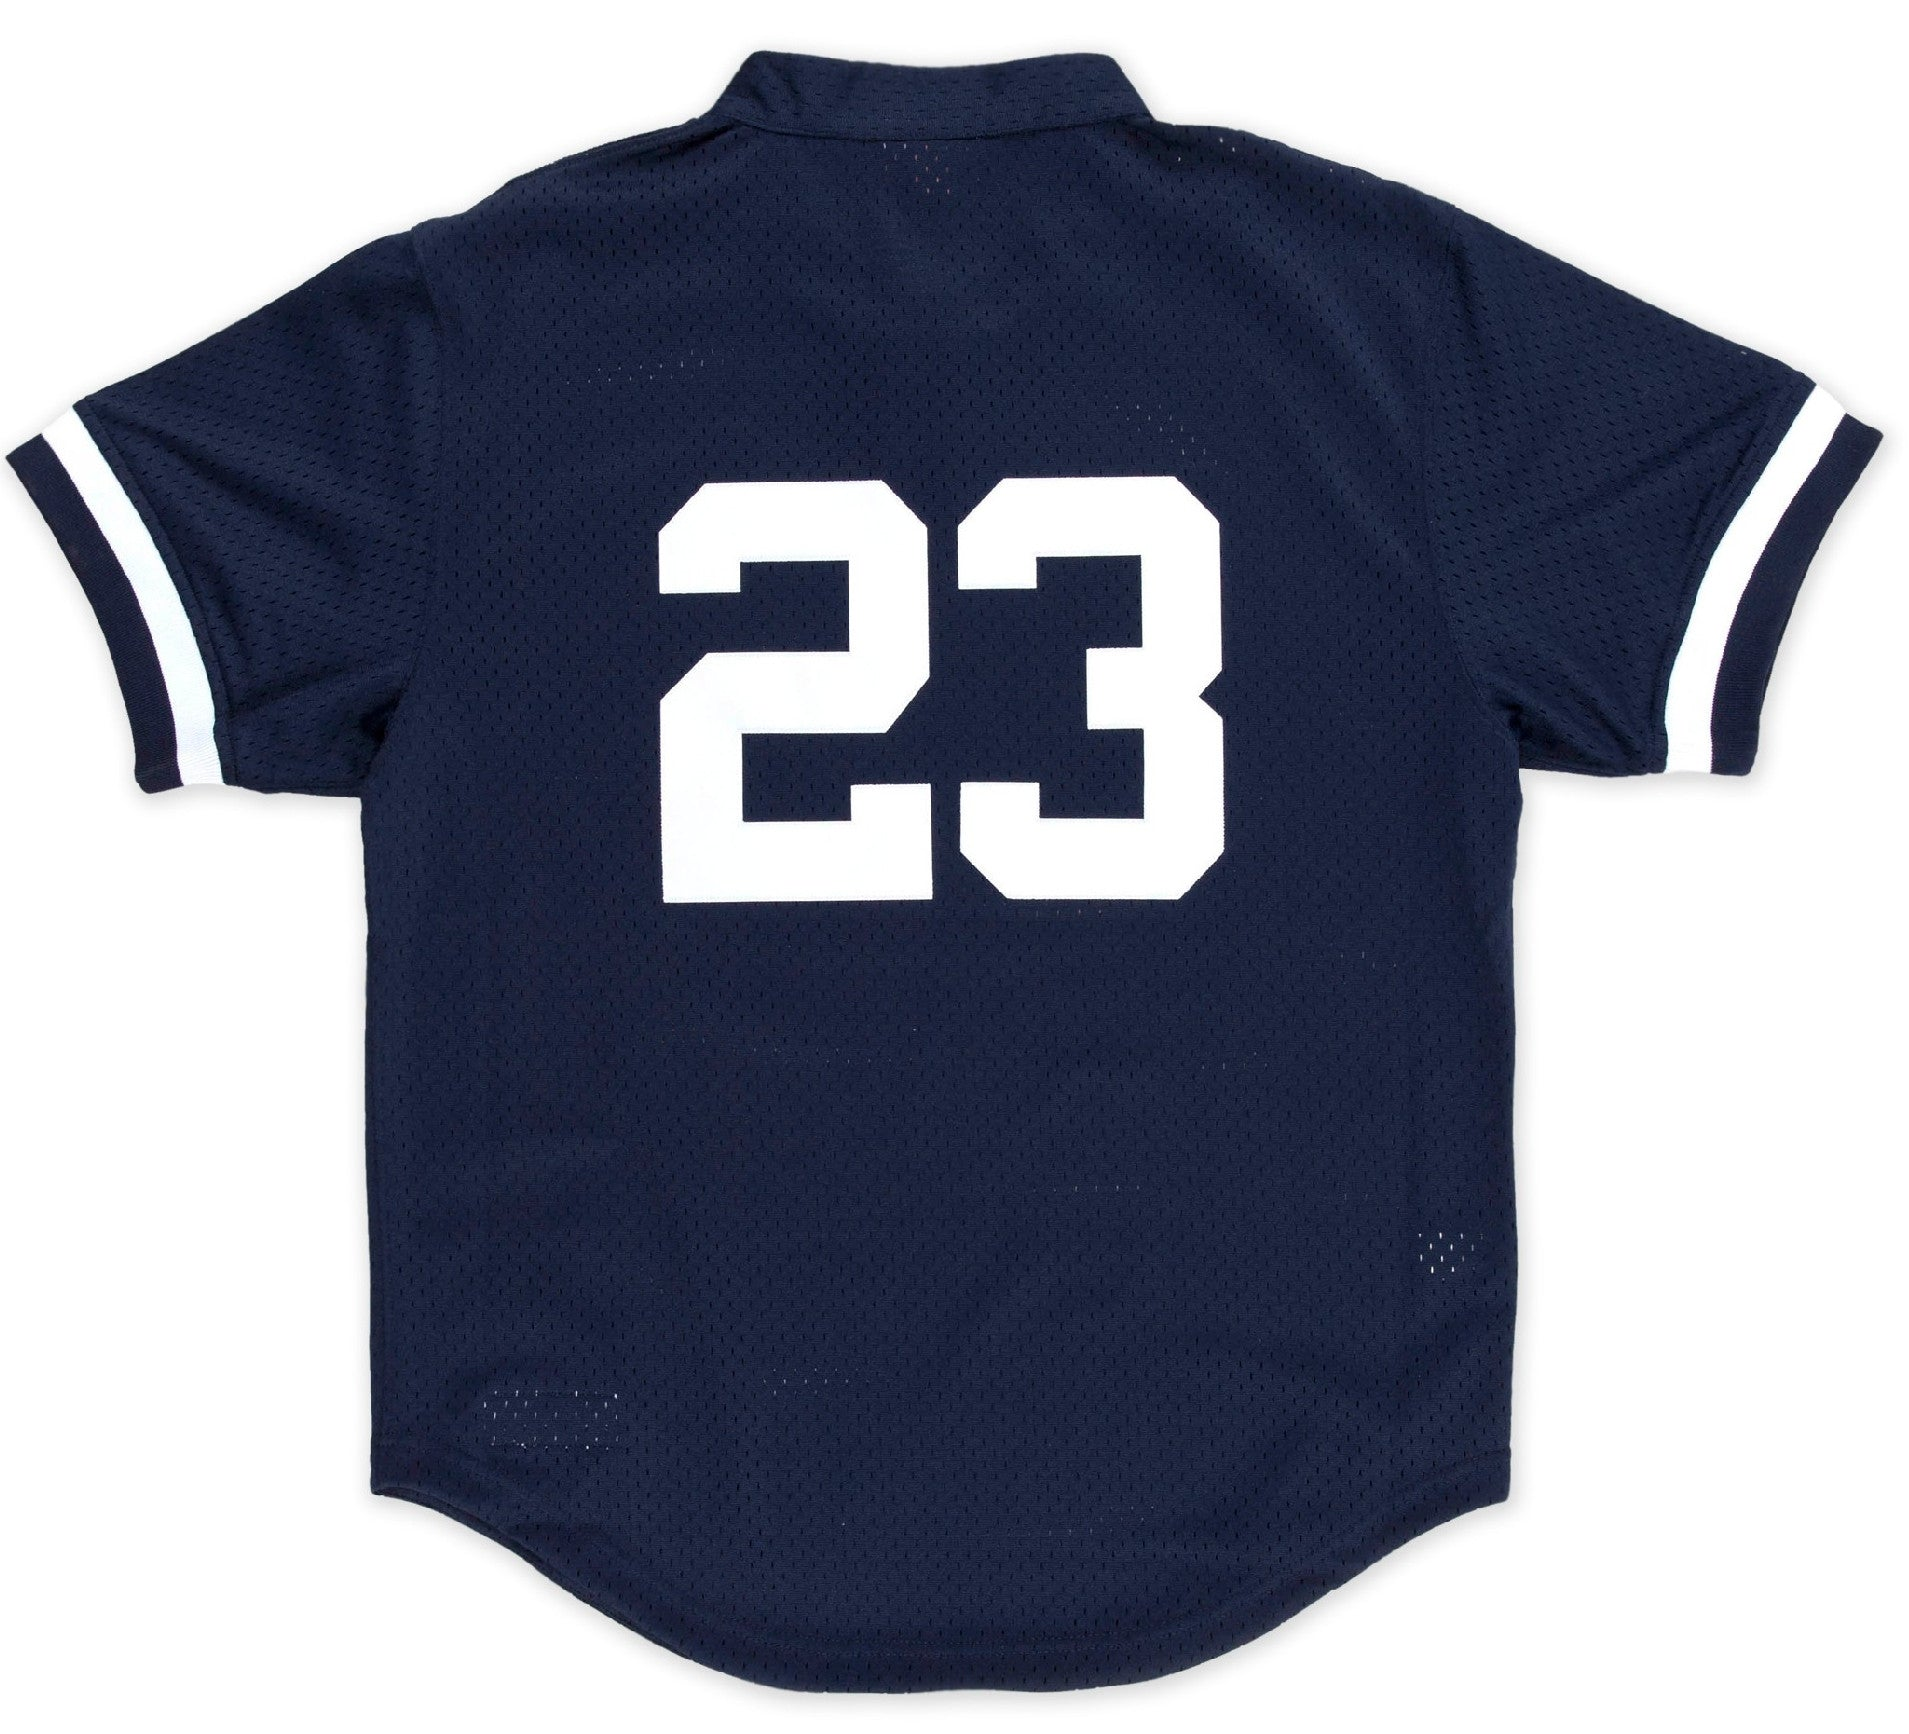 Don Mattingly Yankees Jersey - And Still